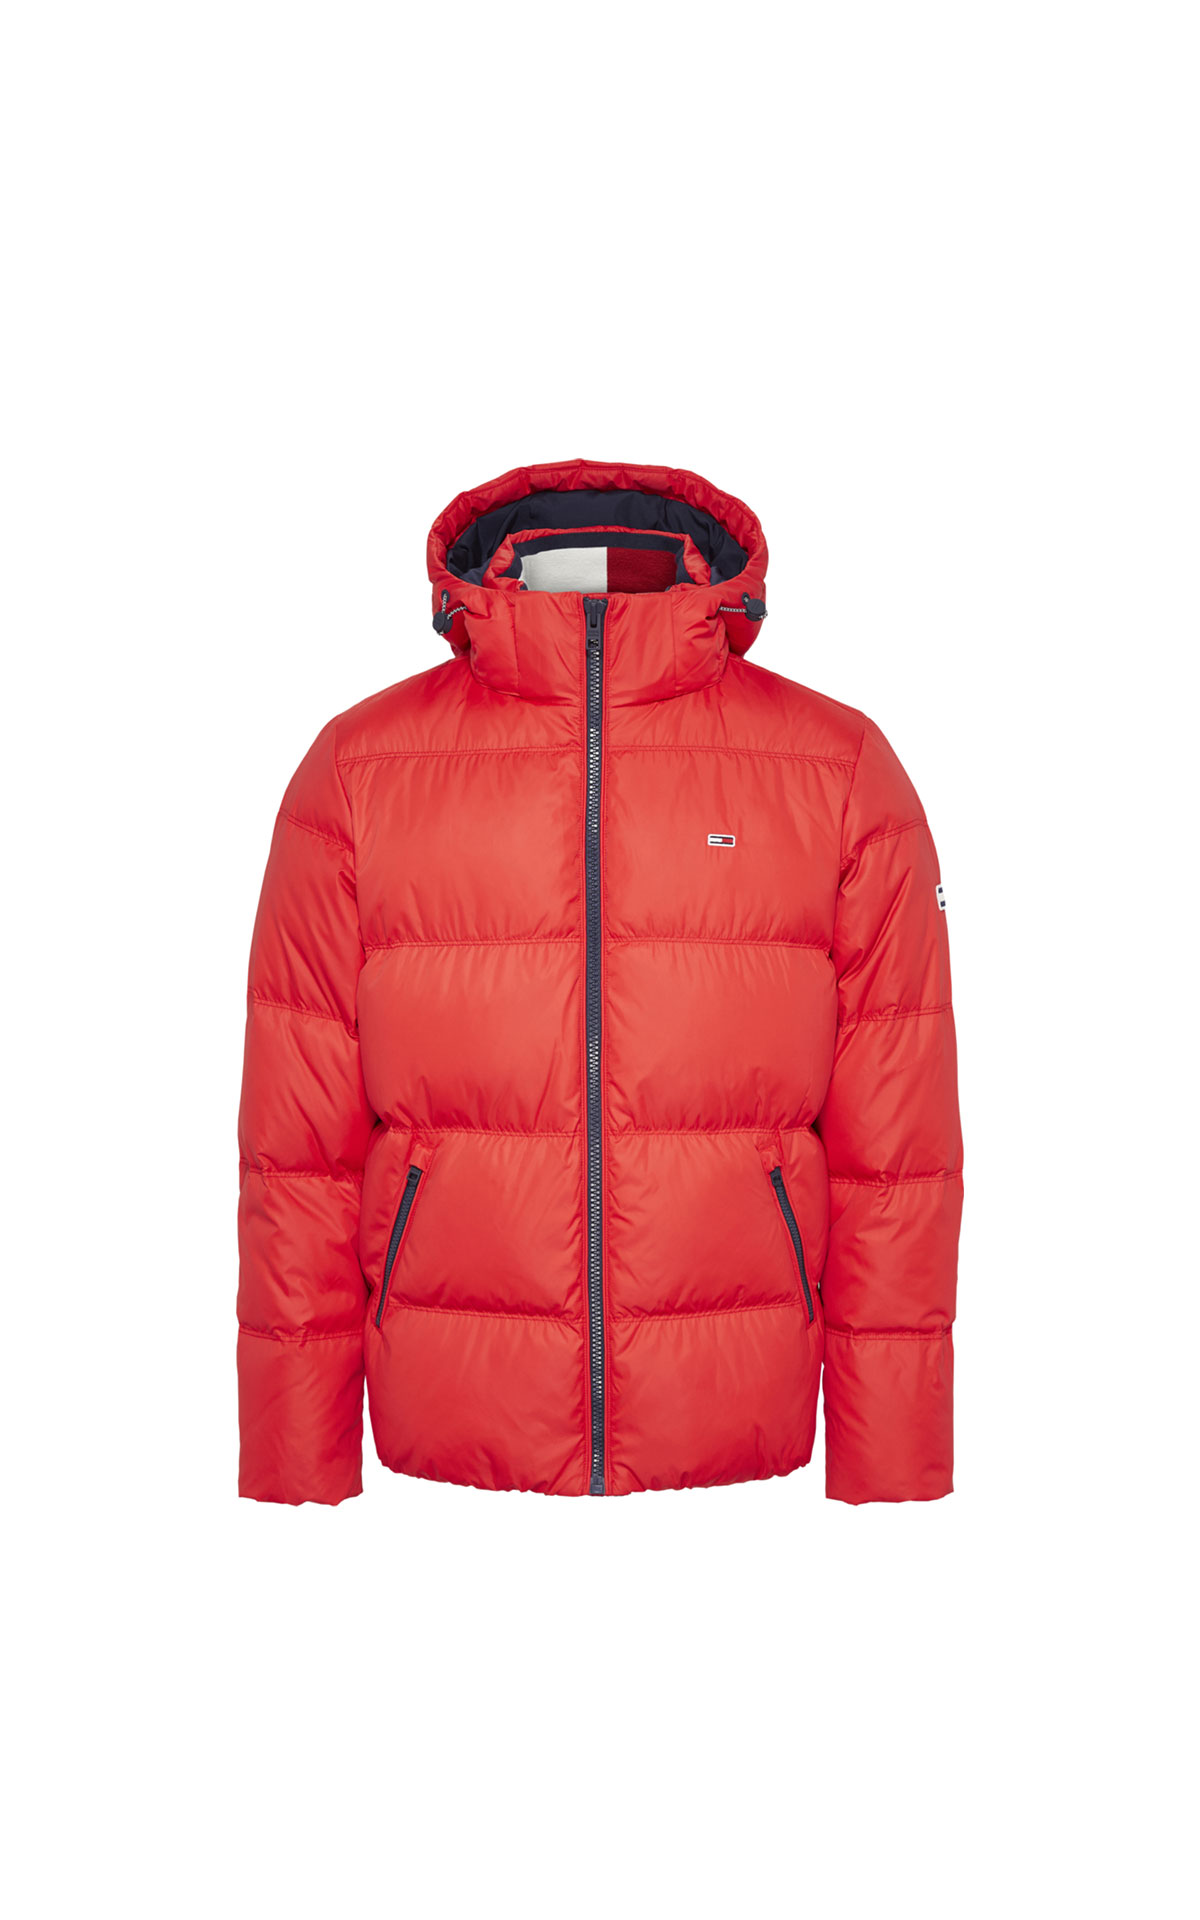 Tommy Hilfiger Men's Tommy Jeans Basic Down Jacket at The Bicester Village Shopping Collection